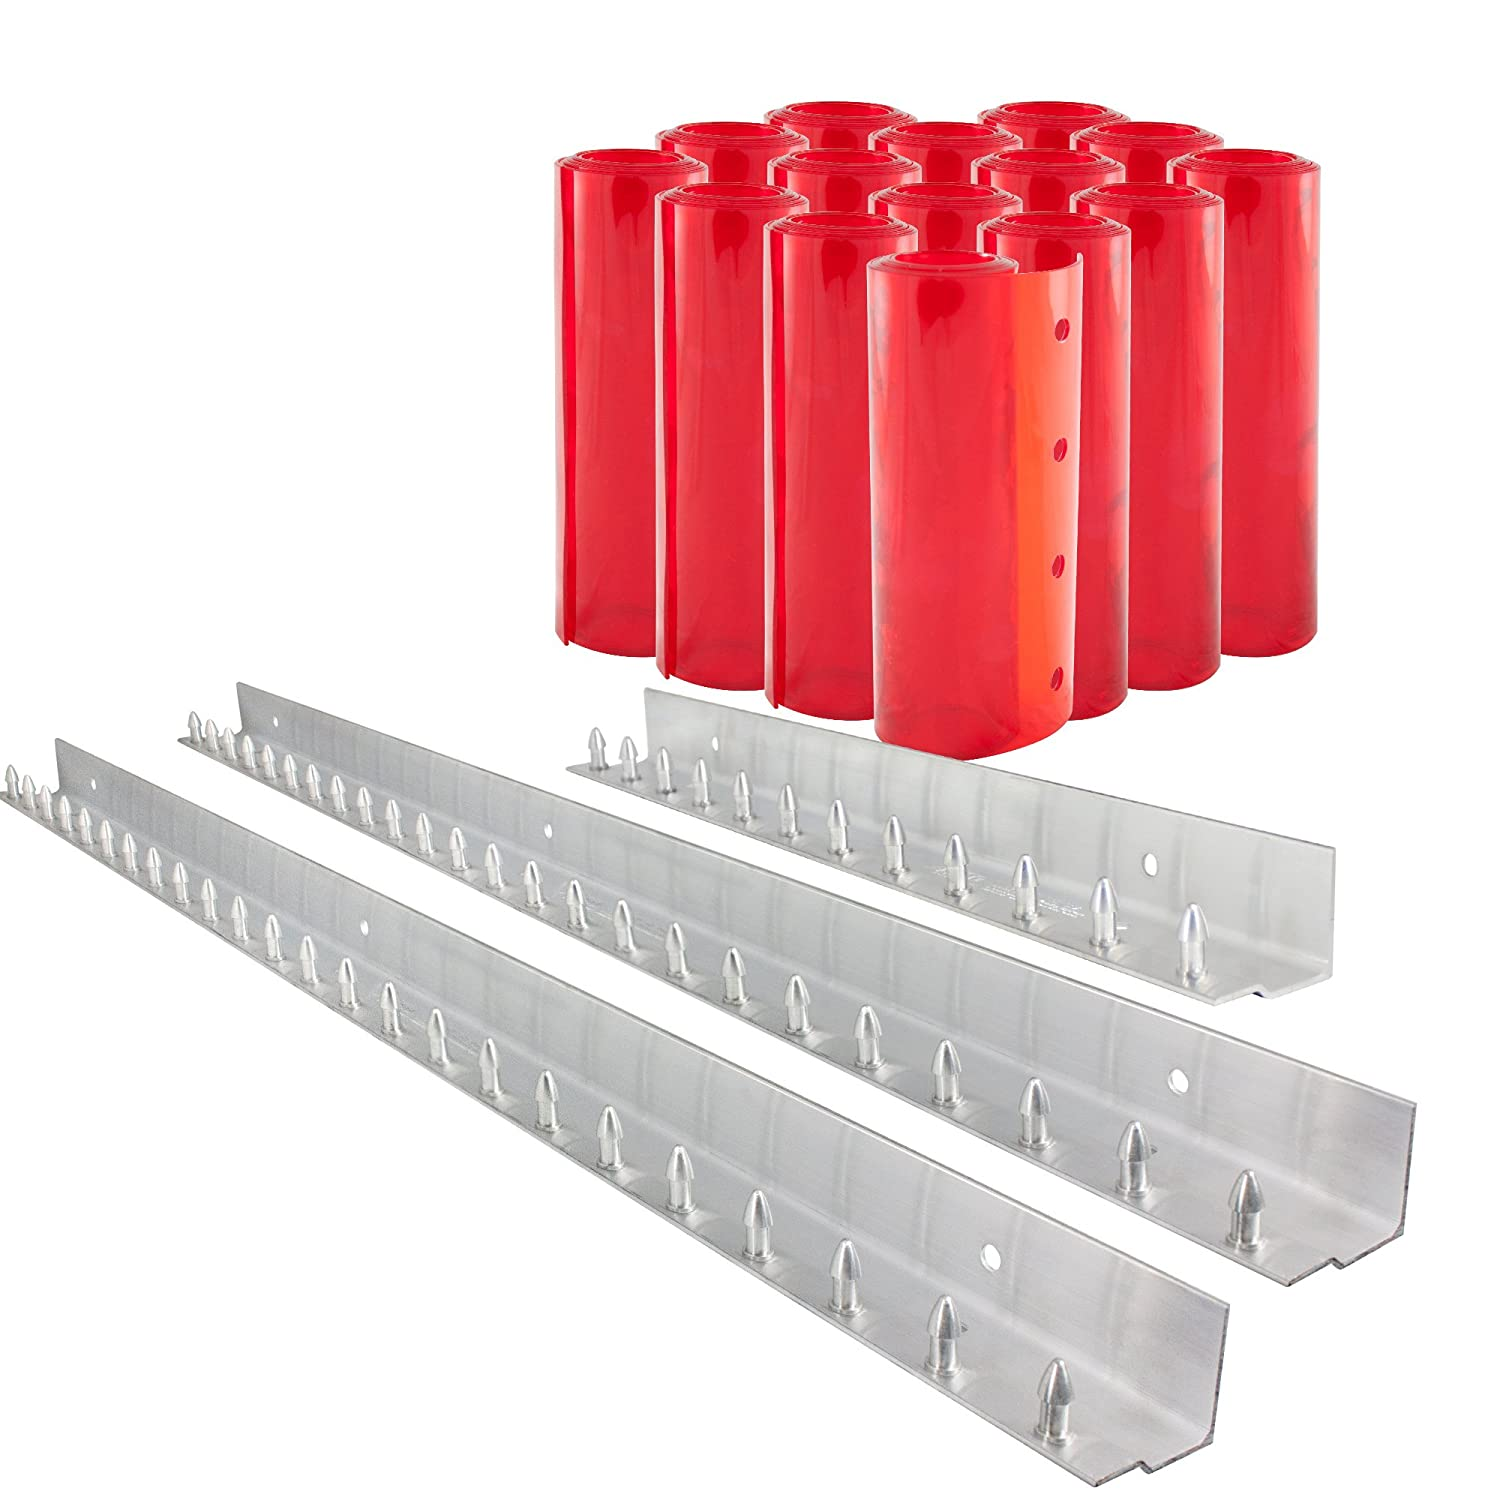 6 Width x 84 Height x 0.06 Thick Aleco 440042 Clear-Flex II Low-Temp Reinforced Freezer Strip Door Mounting Kit with MaxBullet Aluminum Mounting Hardware